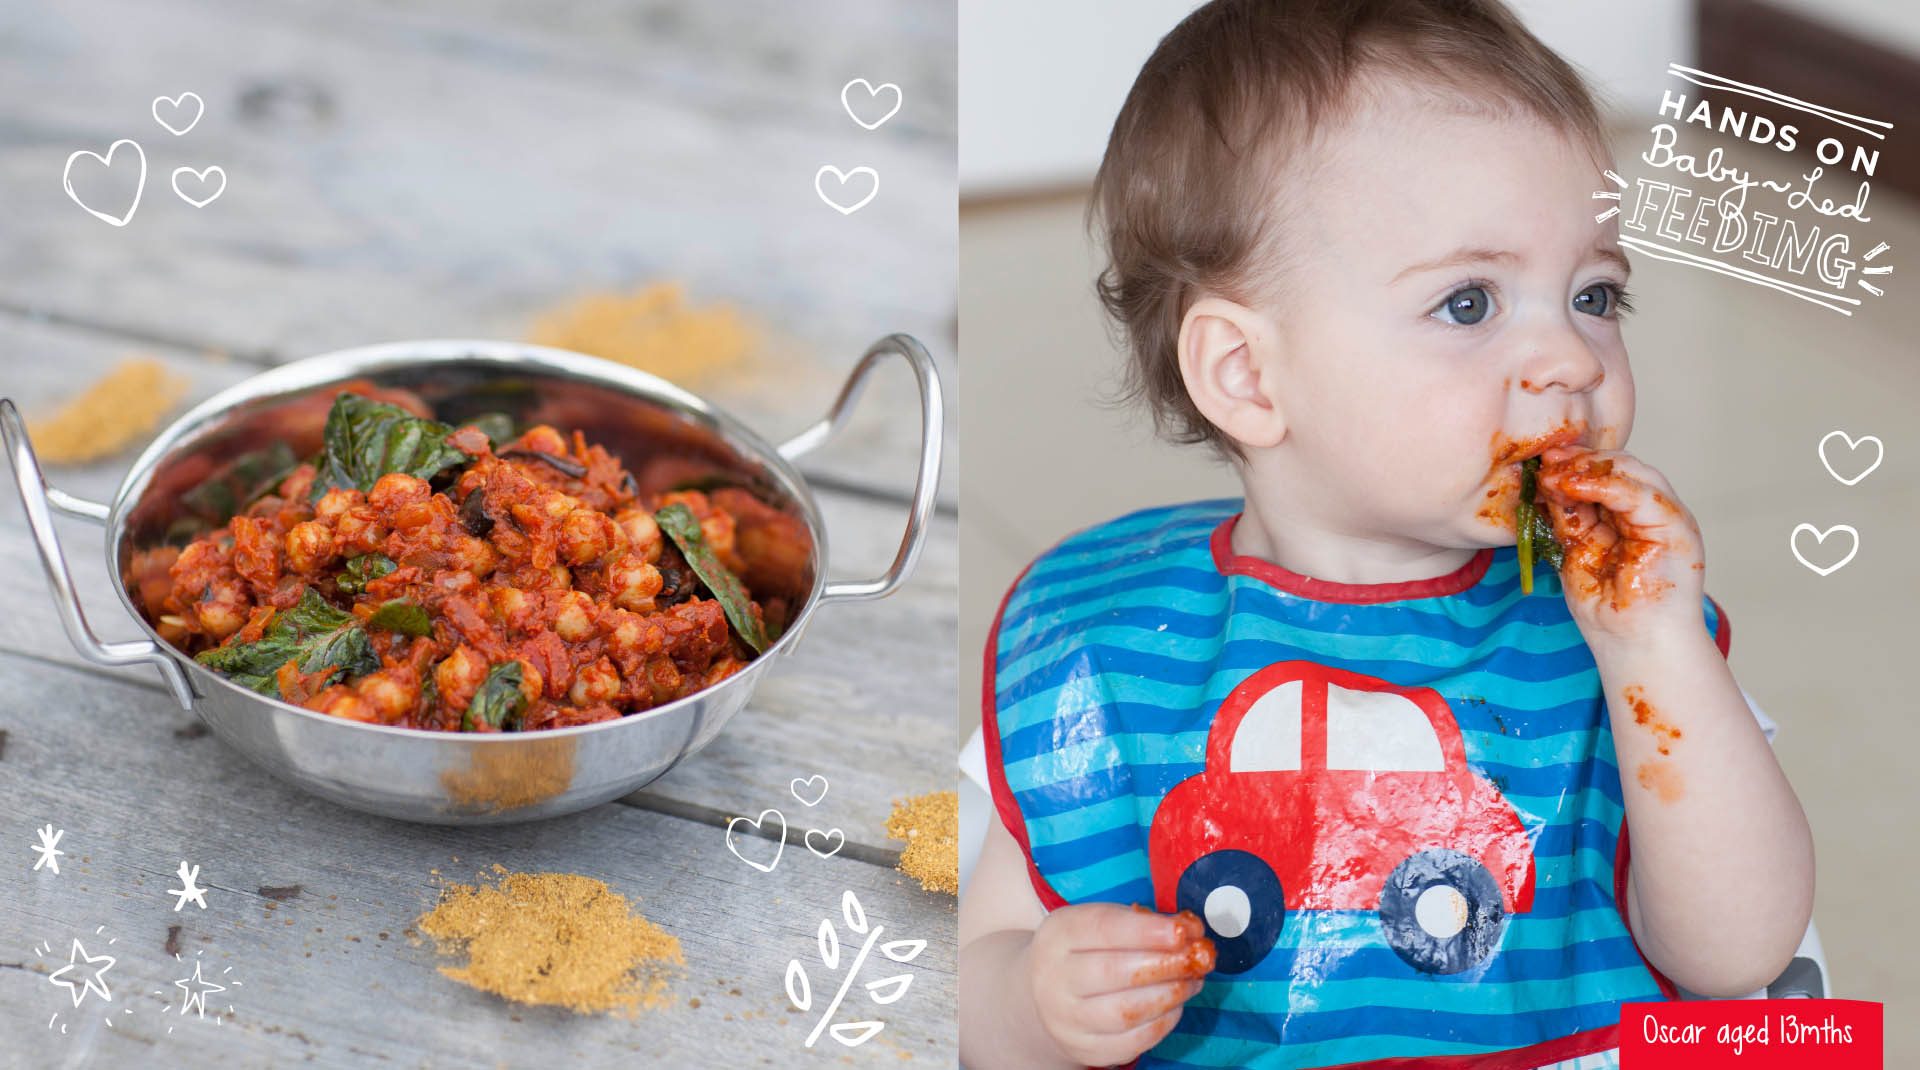 Baby Led Feeding Branding and website for new food startup Irish company Irish Food Blogger Design.